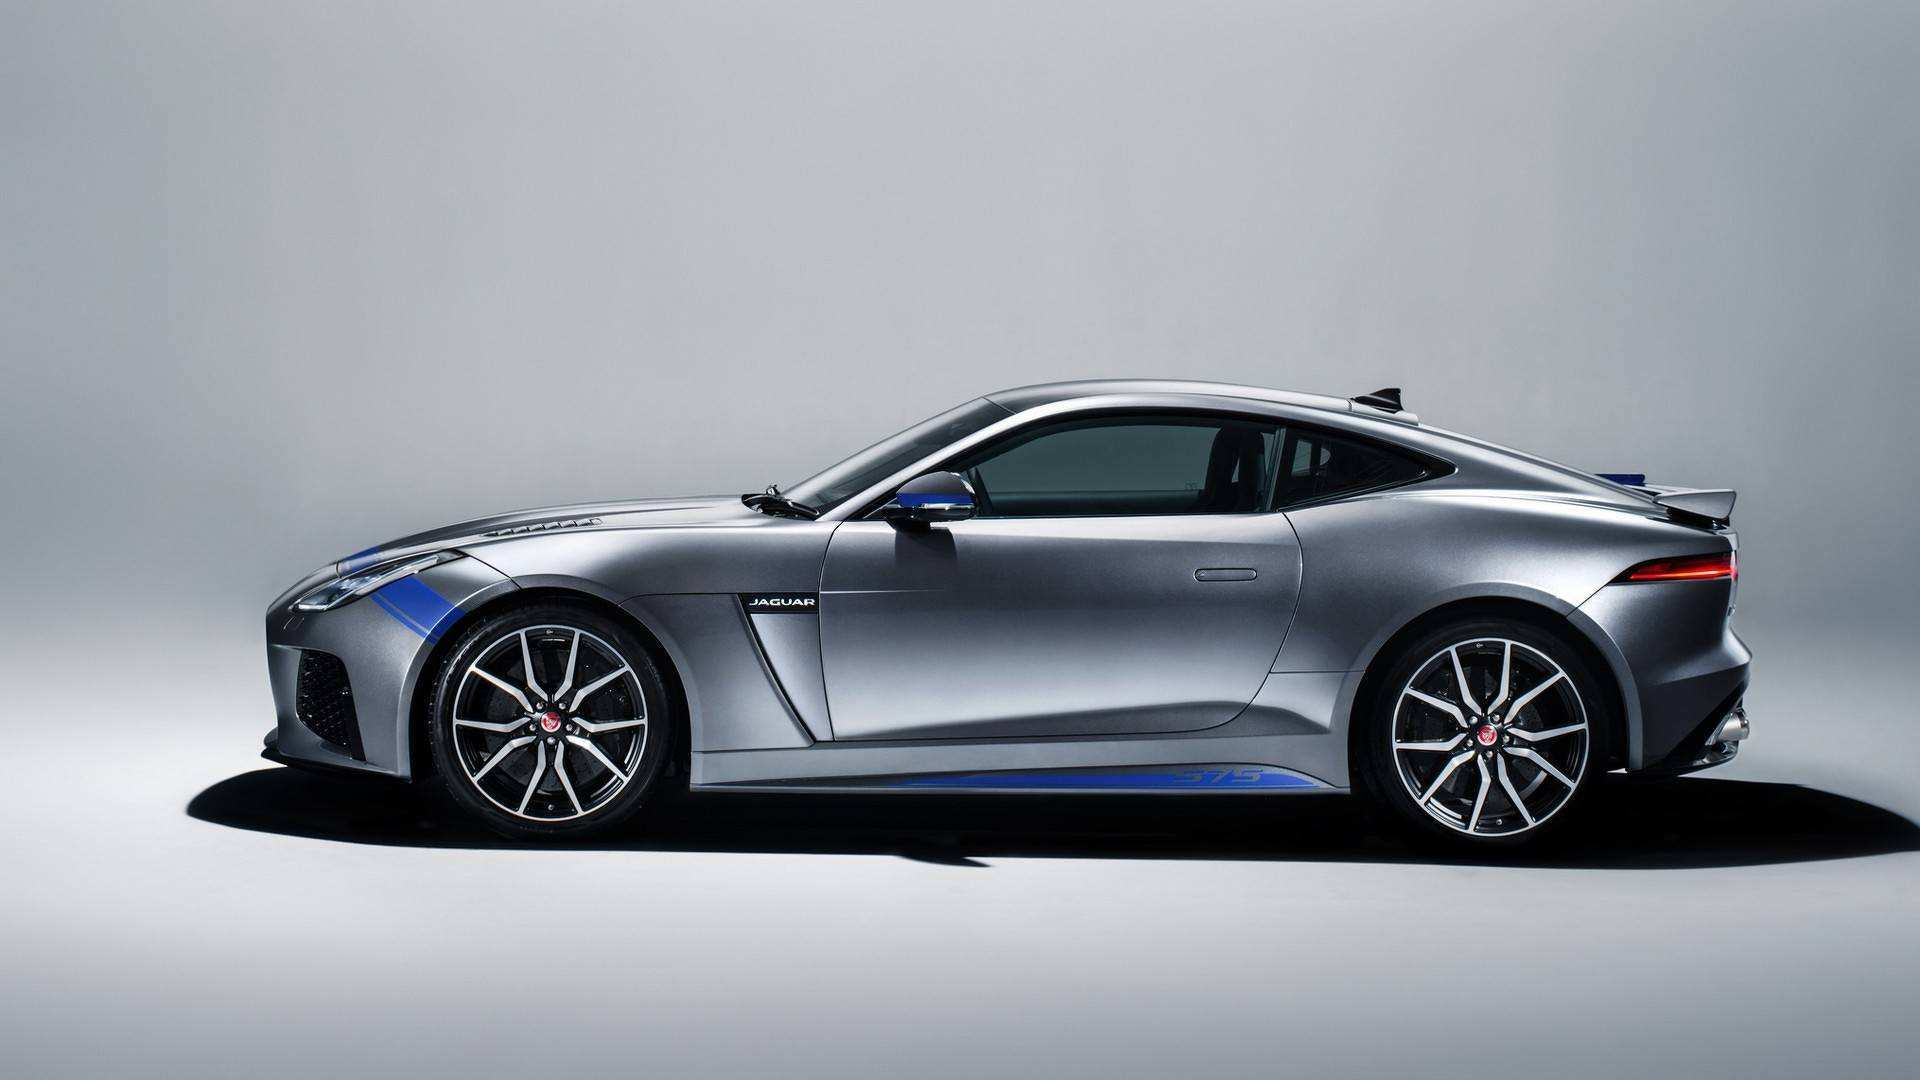 65 New 2020 Jaguar F Type Wallpaper